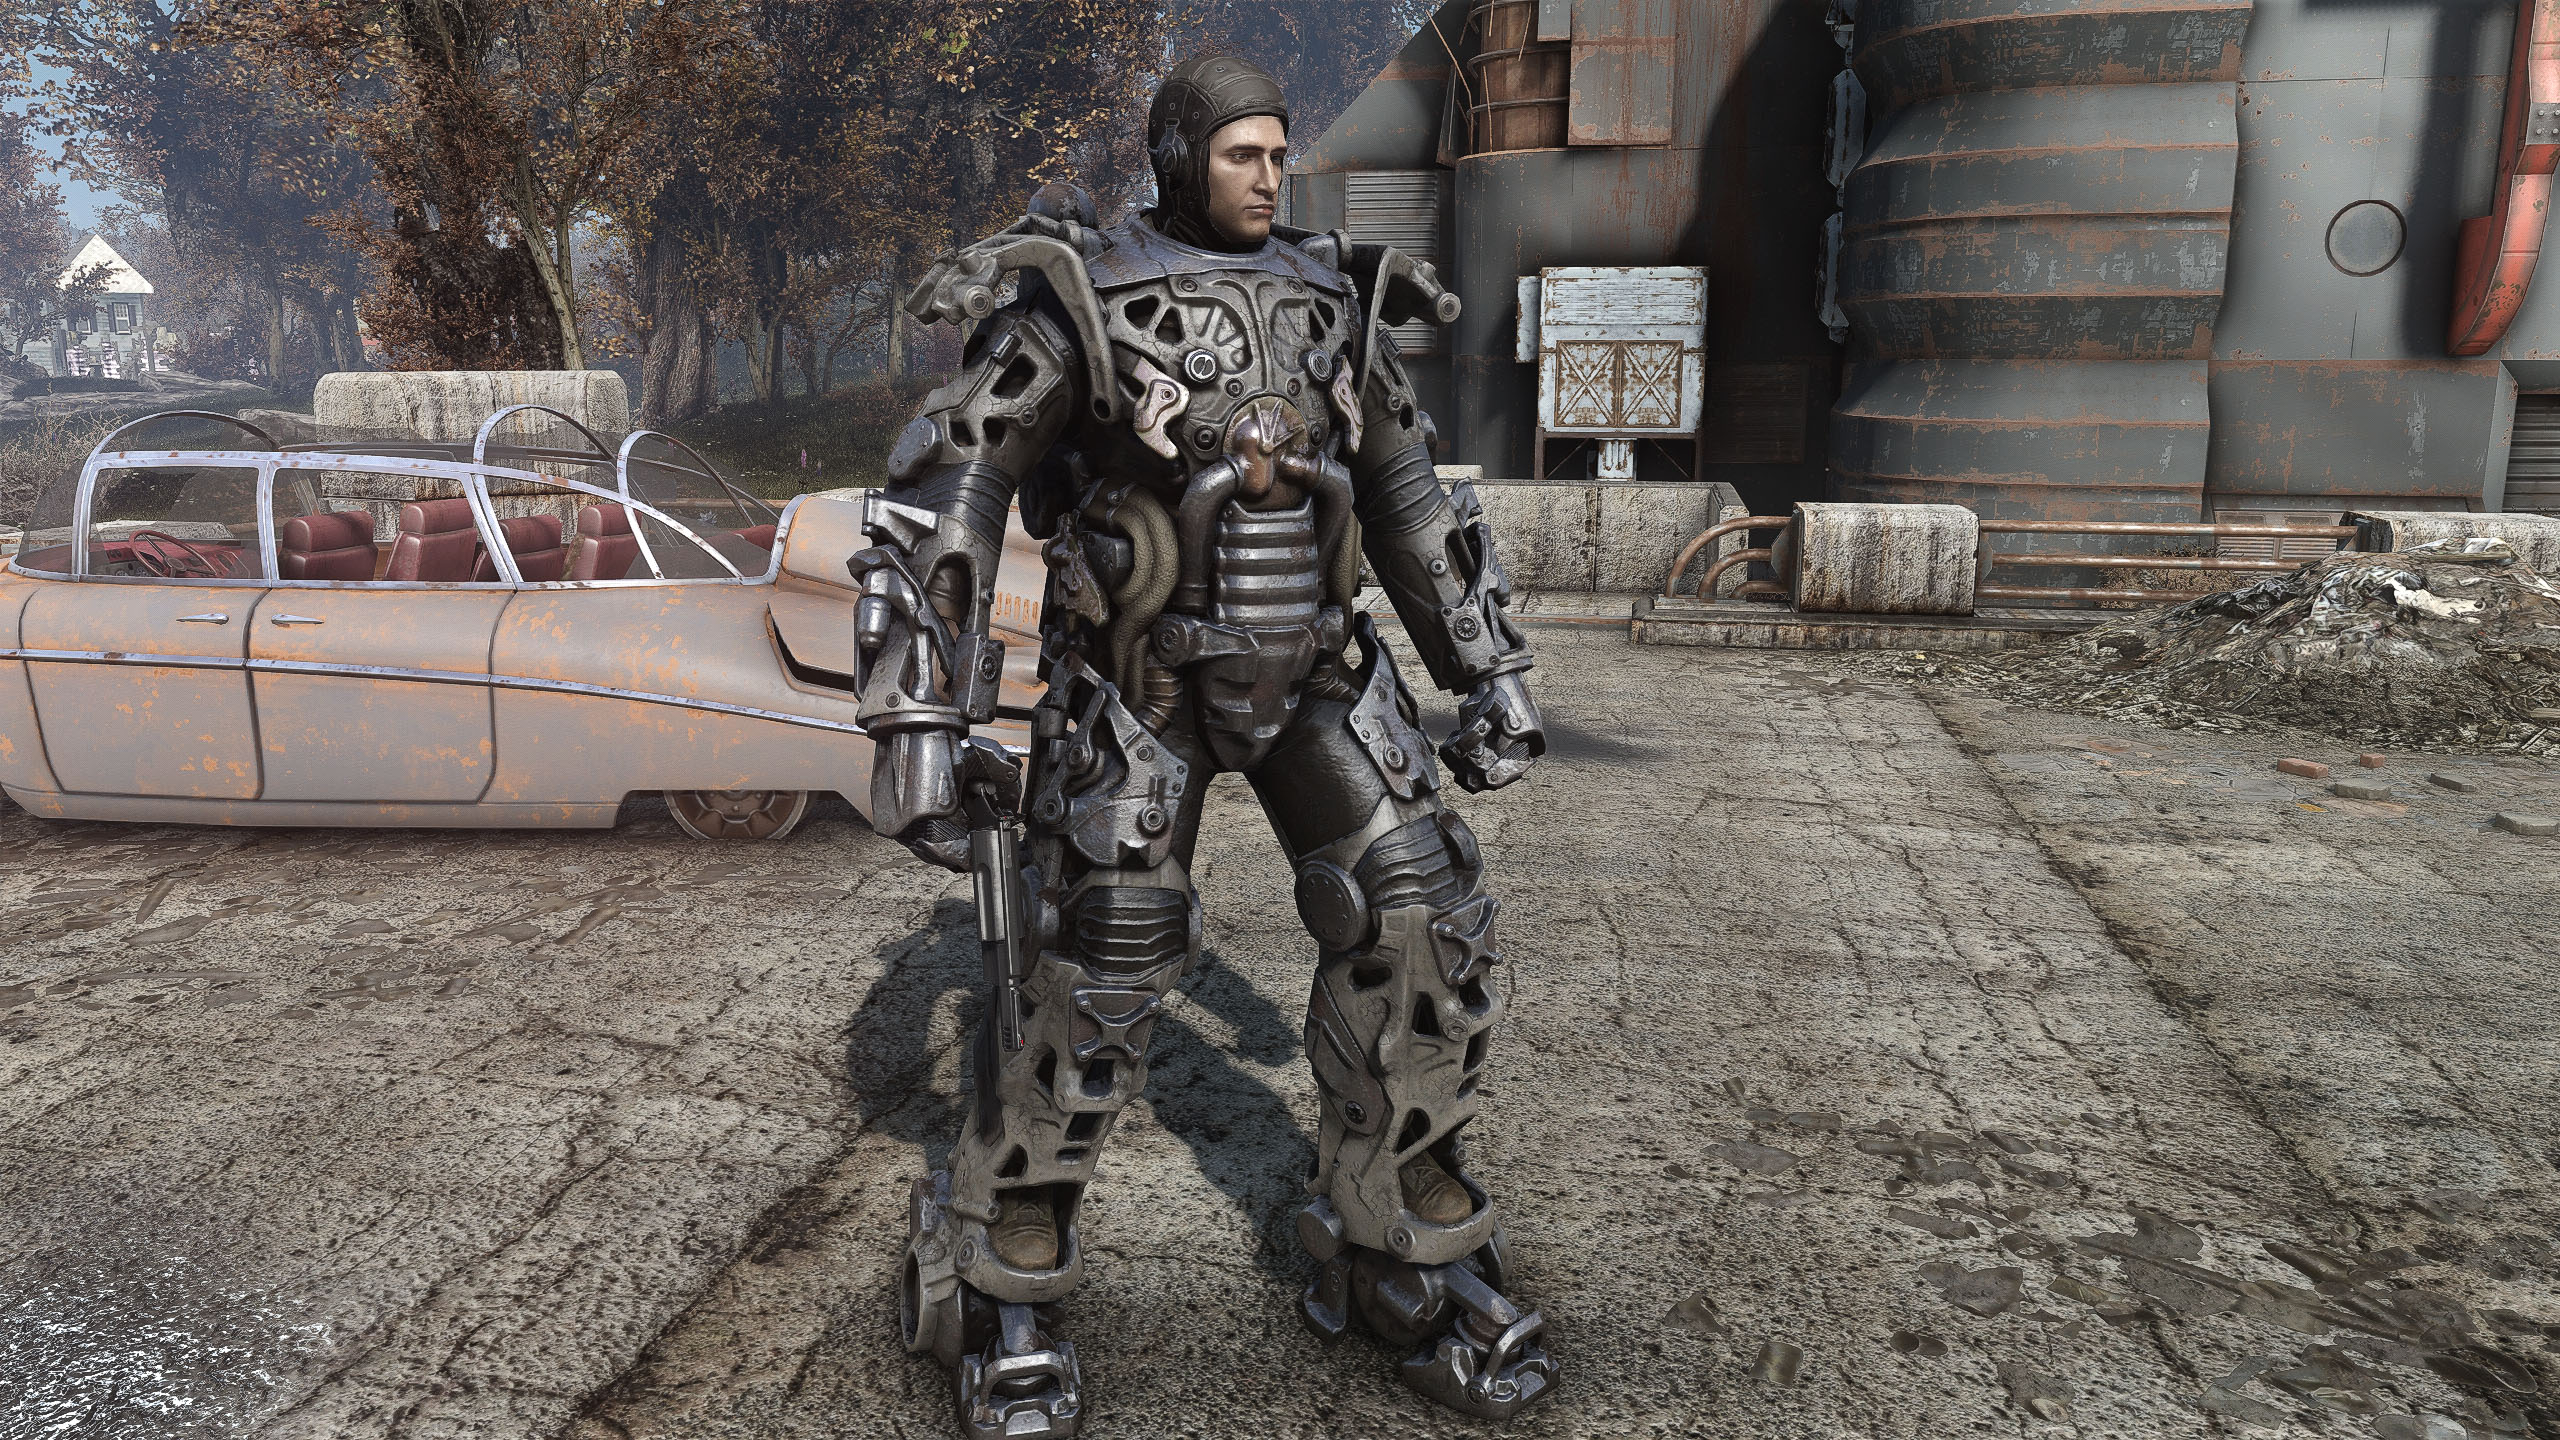 Power Armor Frame 4K UHD Mod - Fallout 4 Mods | GameWatcher